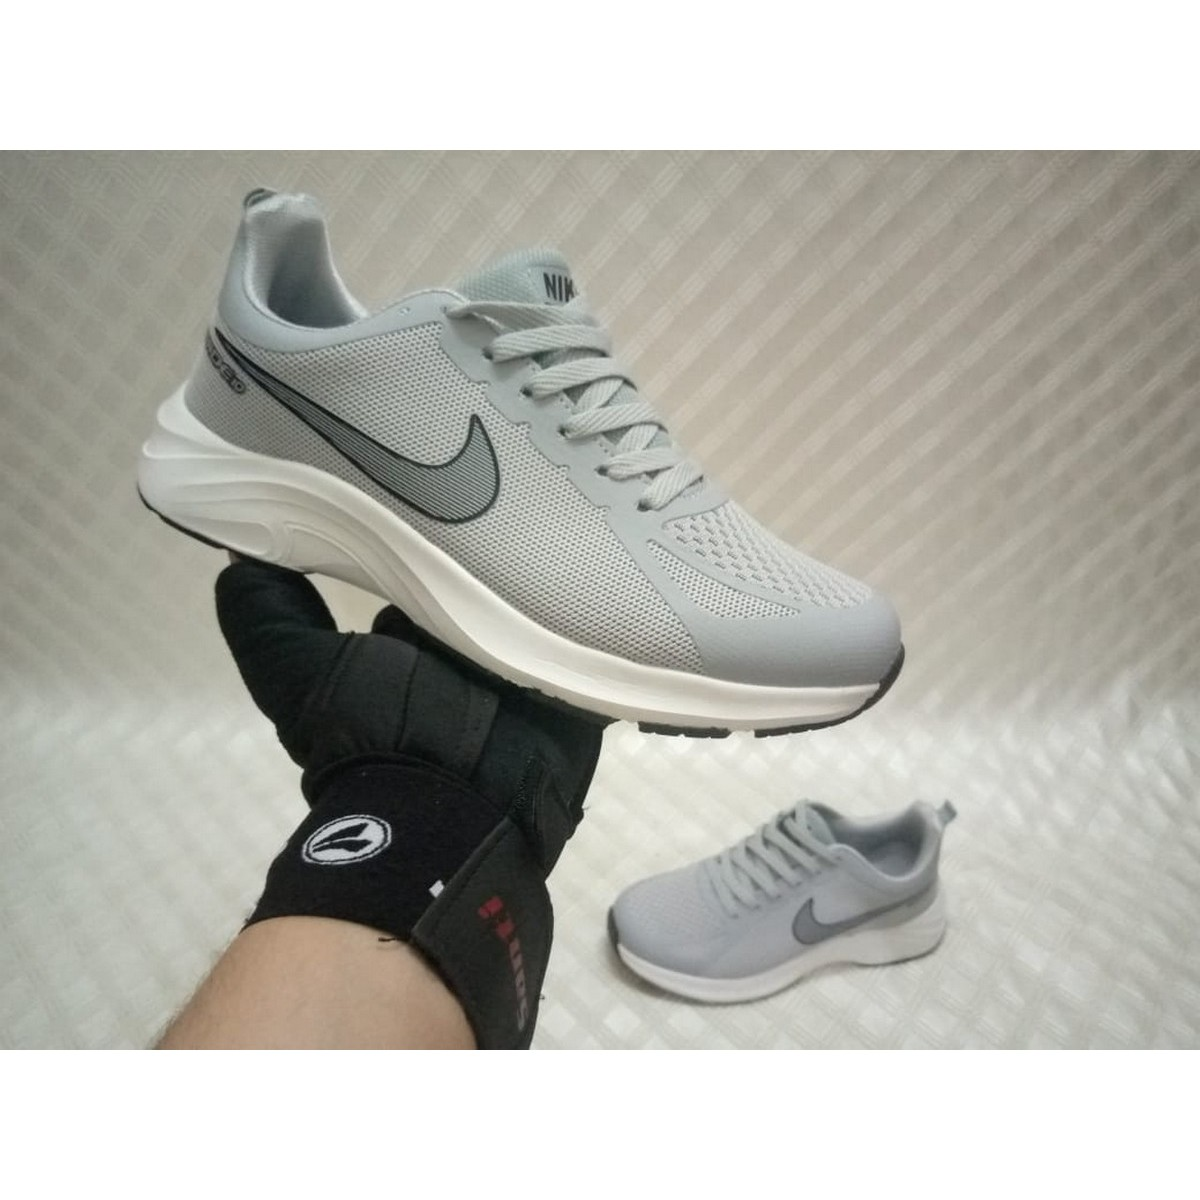 Imported Joggers Sports Running Casual Premium